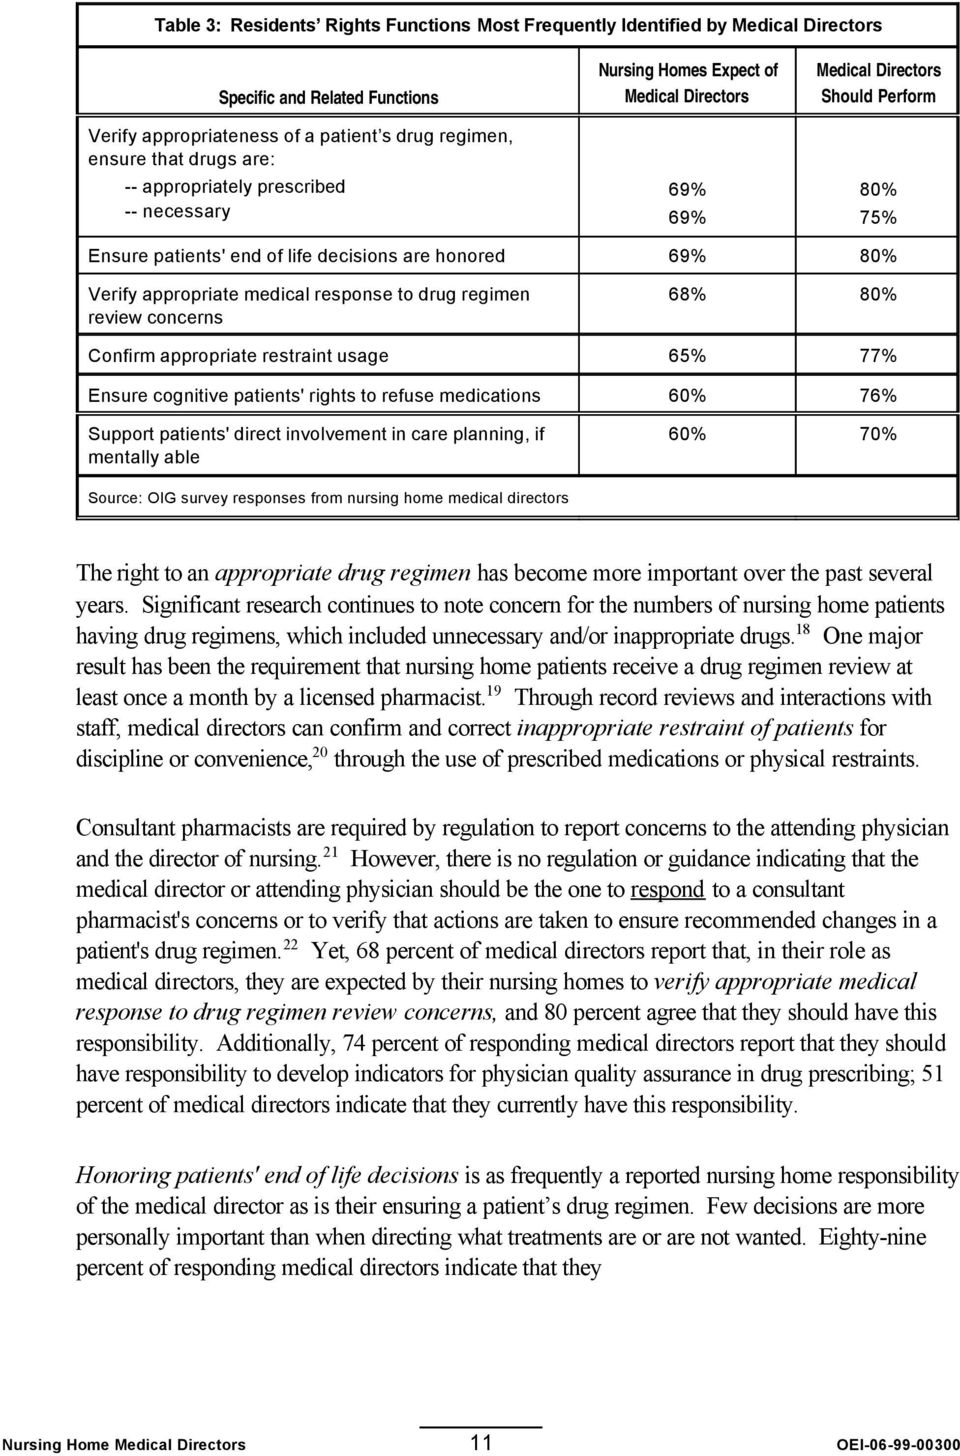 appropriate medical response to drug regimen review concerns 68% 80% Confirm appropriate restraint usage 65% 77% Ensure cognitive patients' rights to refuse medications 60% 76% Support patients'